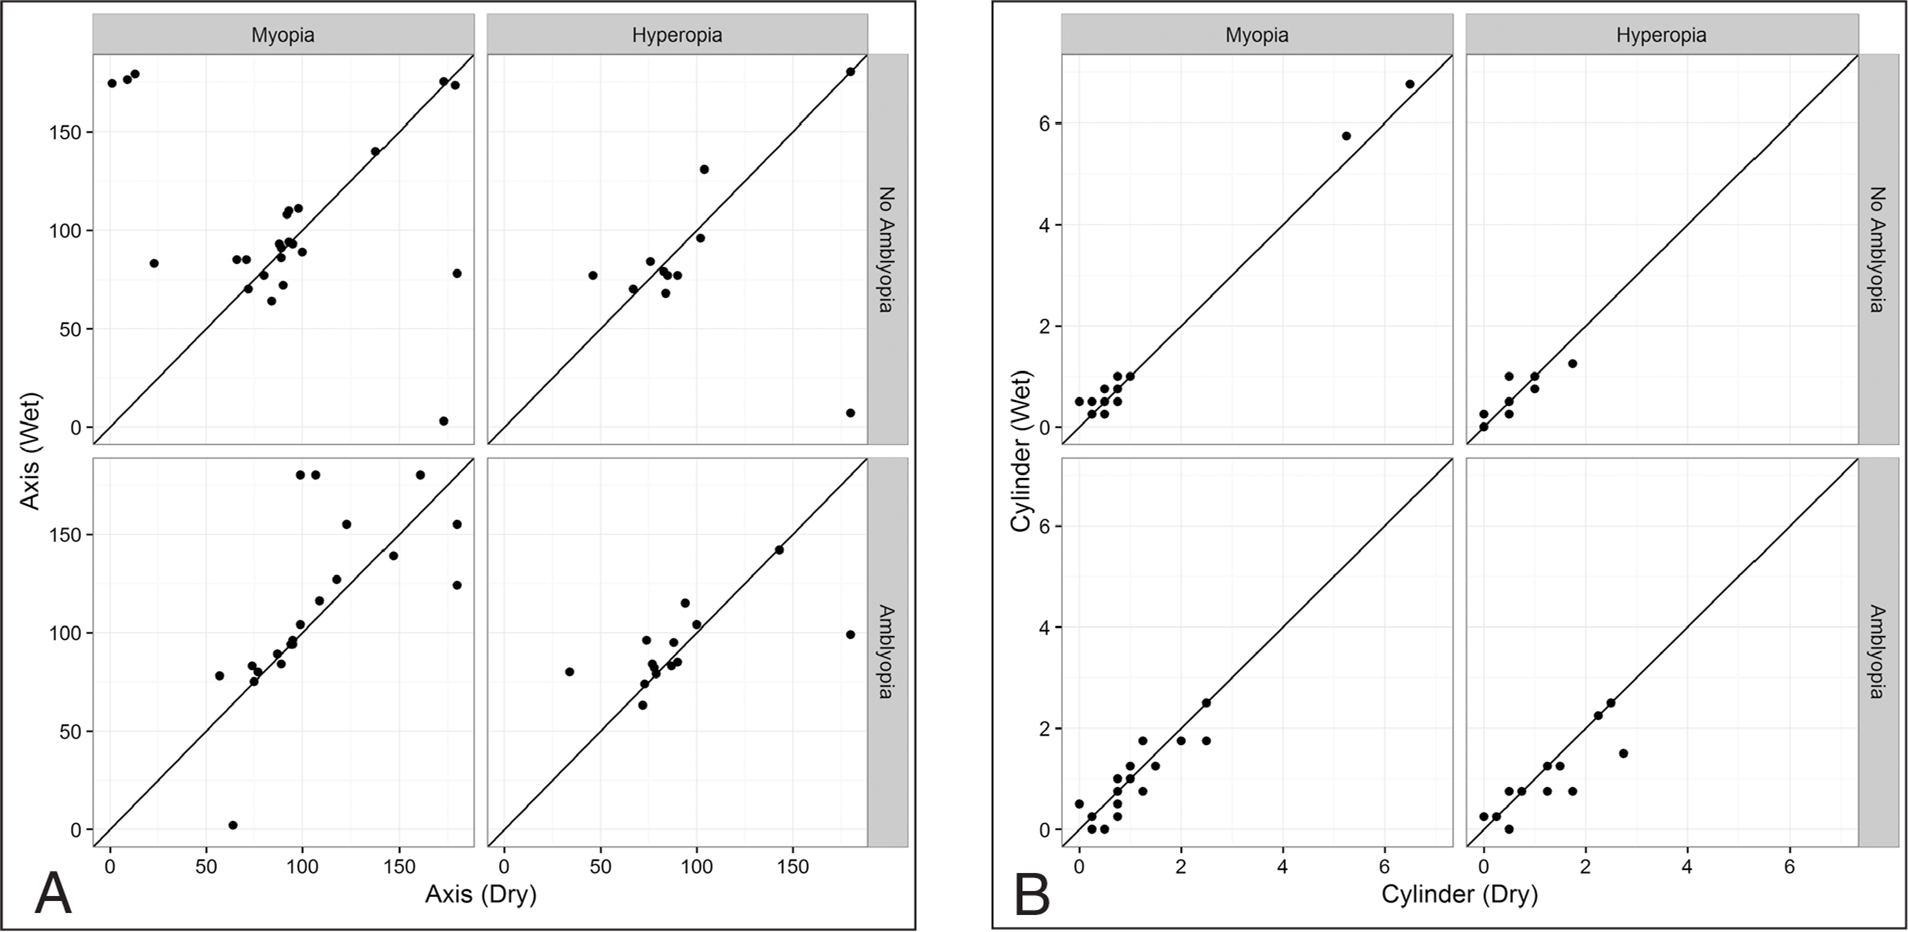 Scatter plot showing correlation of (A) axis and (B) cylinder before and after cycloplegia in patients with myopia and hyperopia with and without amblyopia.